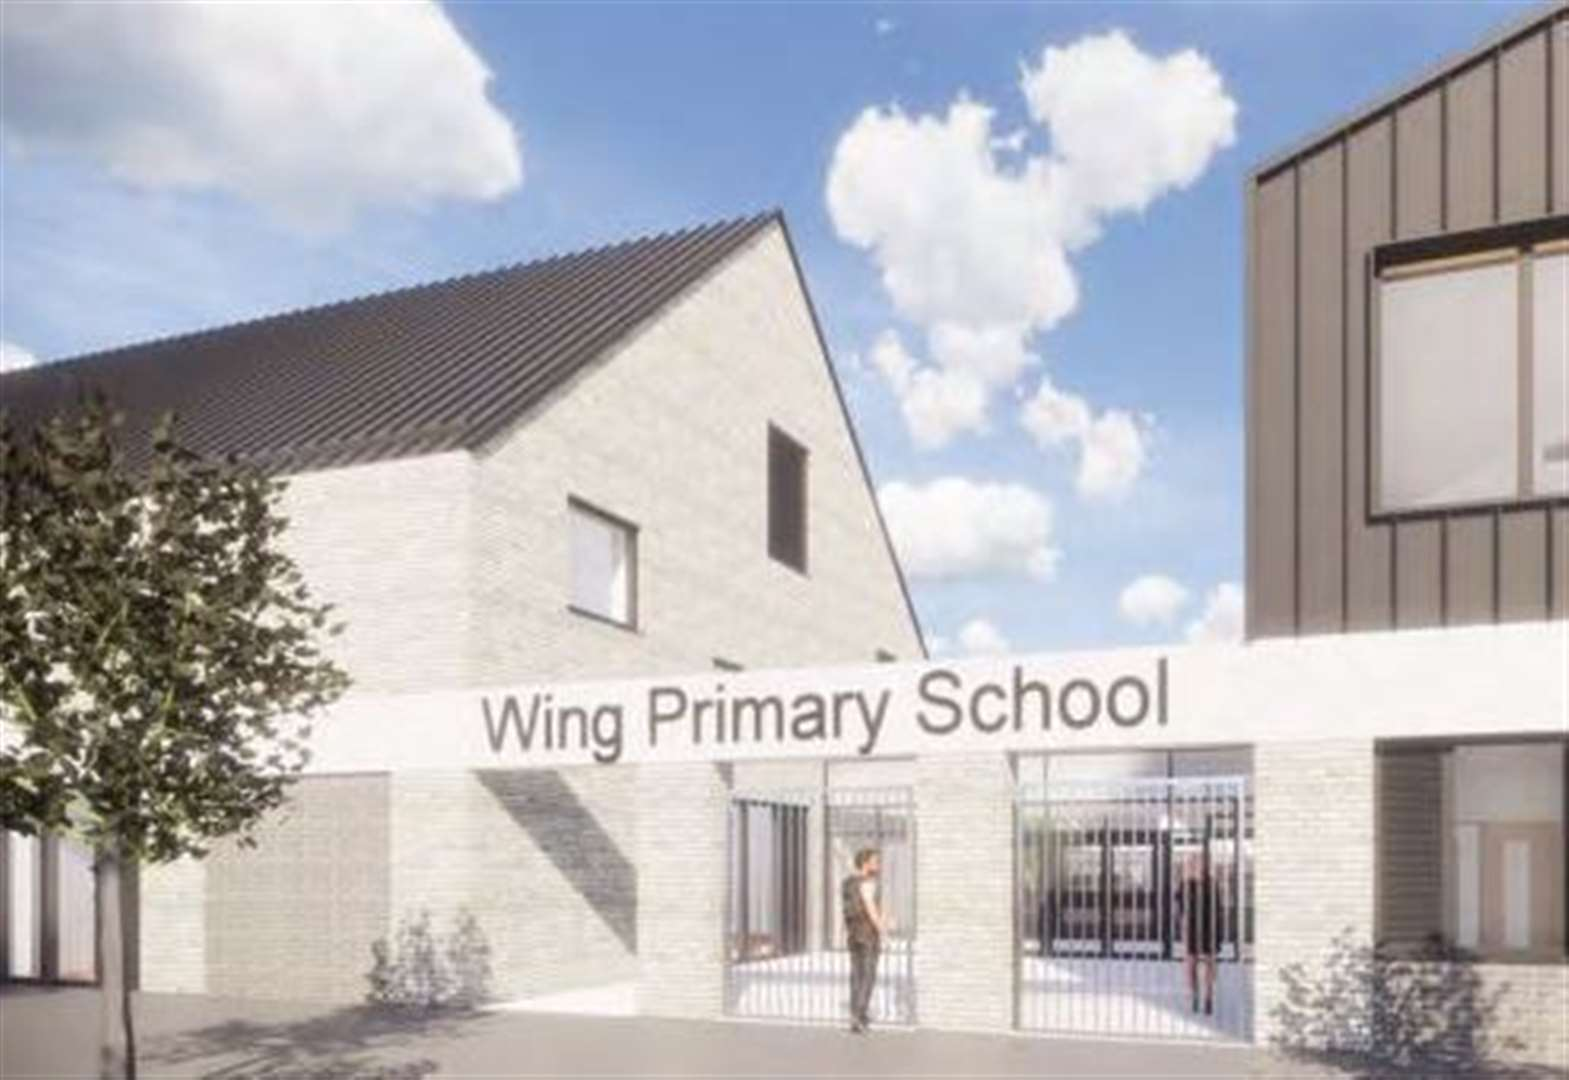 Revised plans for Wing Primary School on Marleigh development in Cambridge